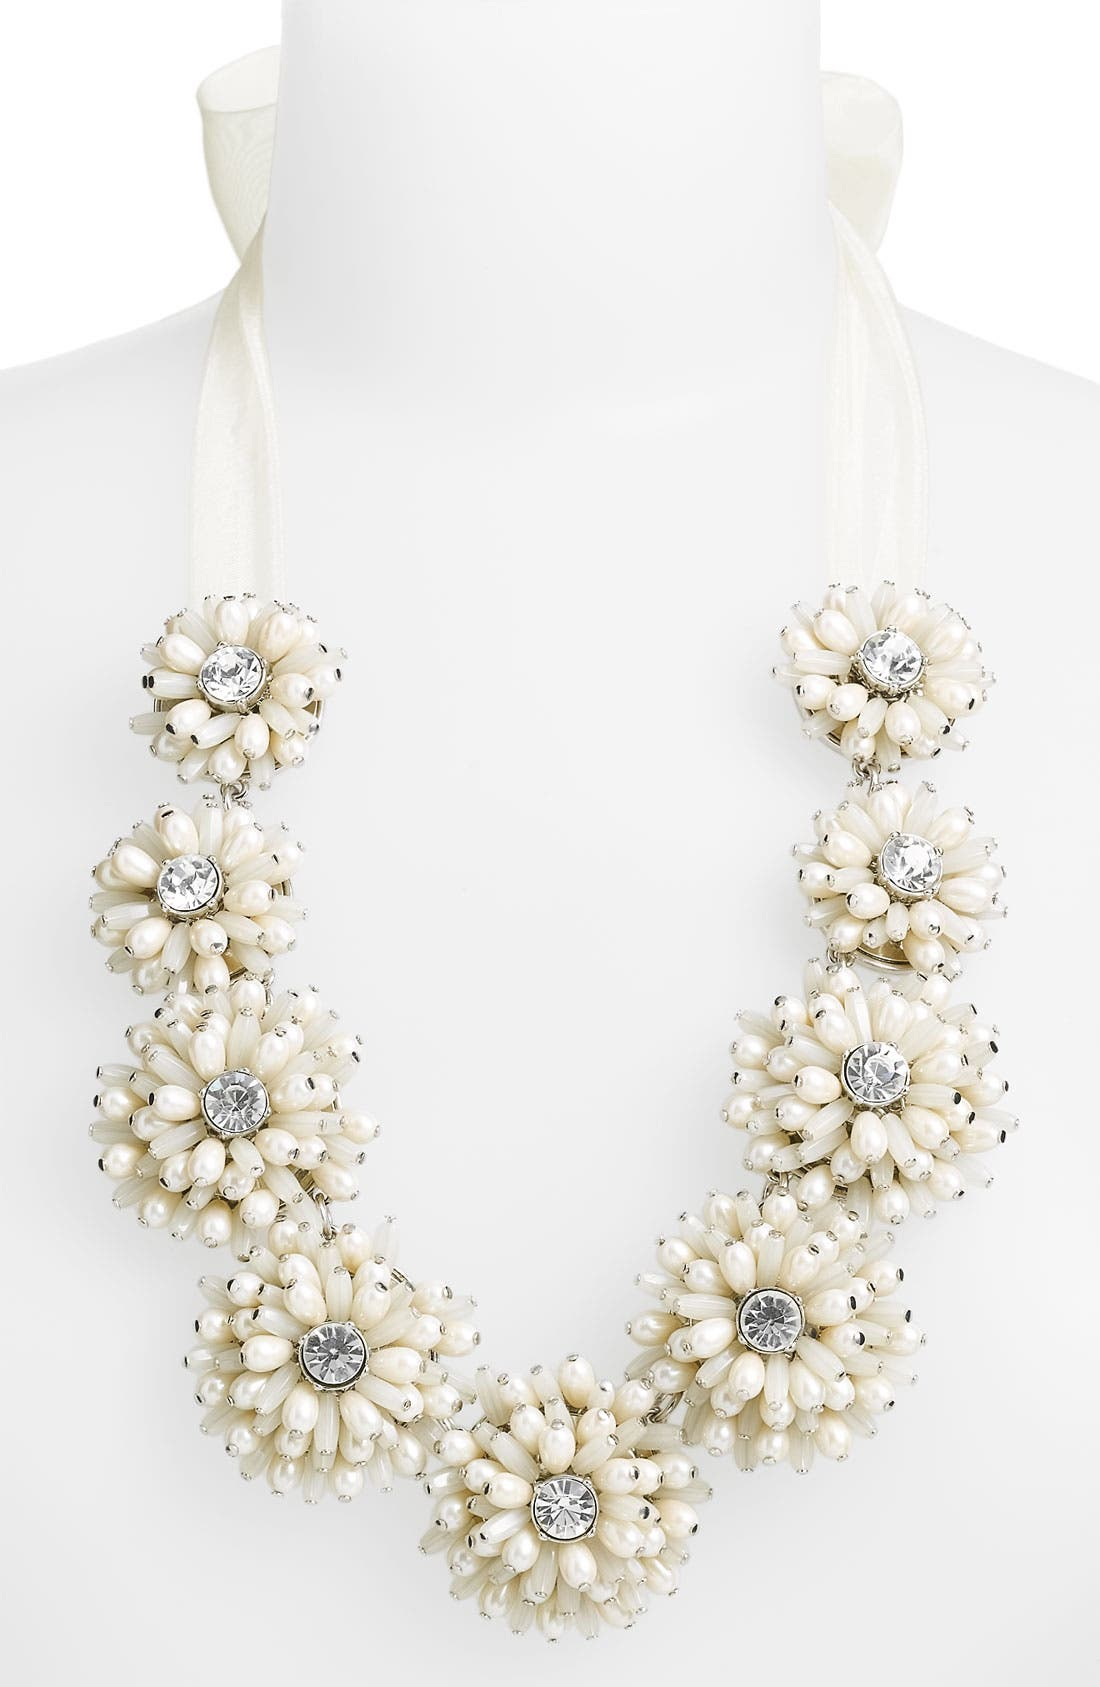 Alternate Image 1 Selected - kate spade new york 'gerbera garden' floral necklace